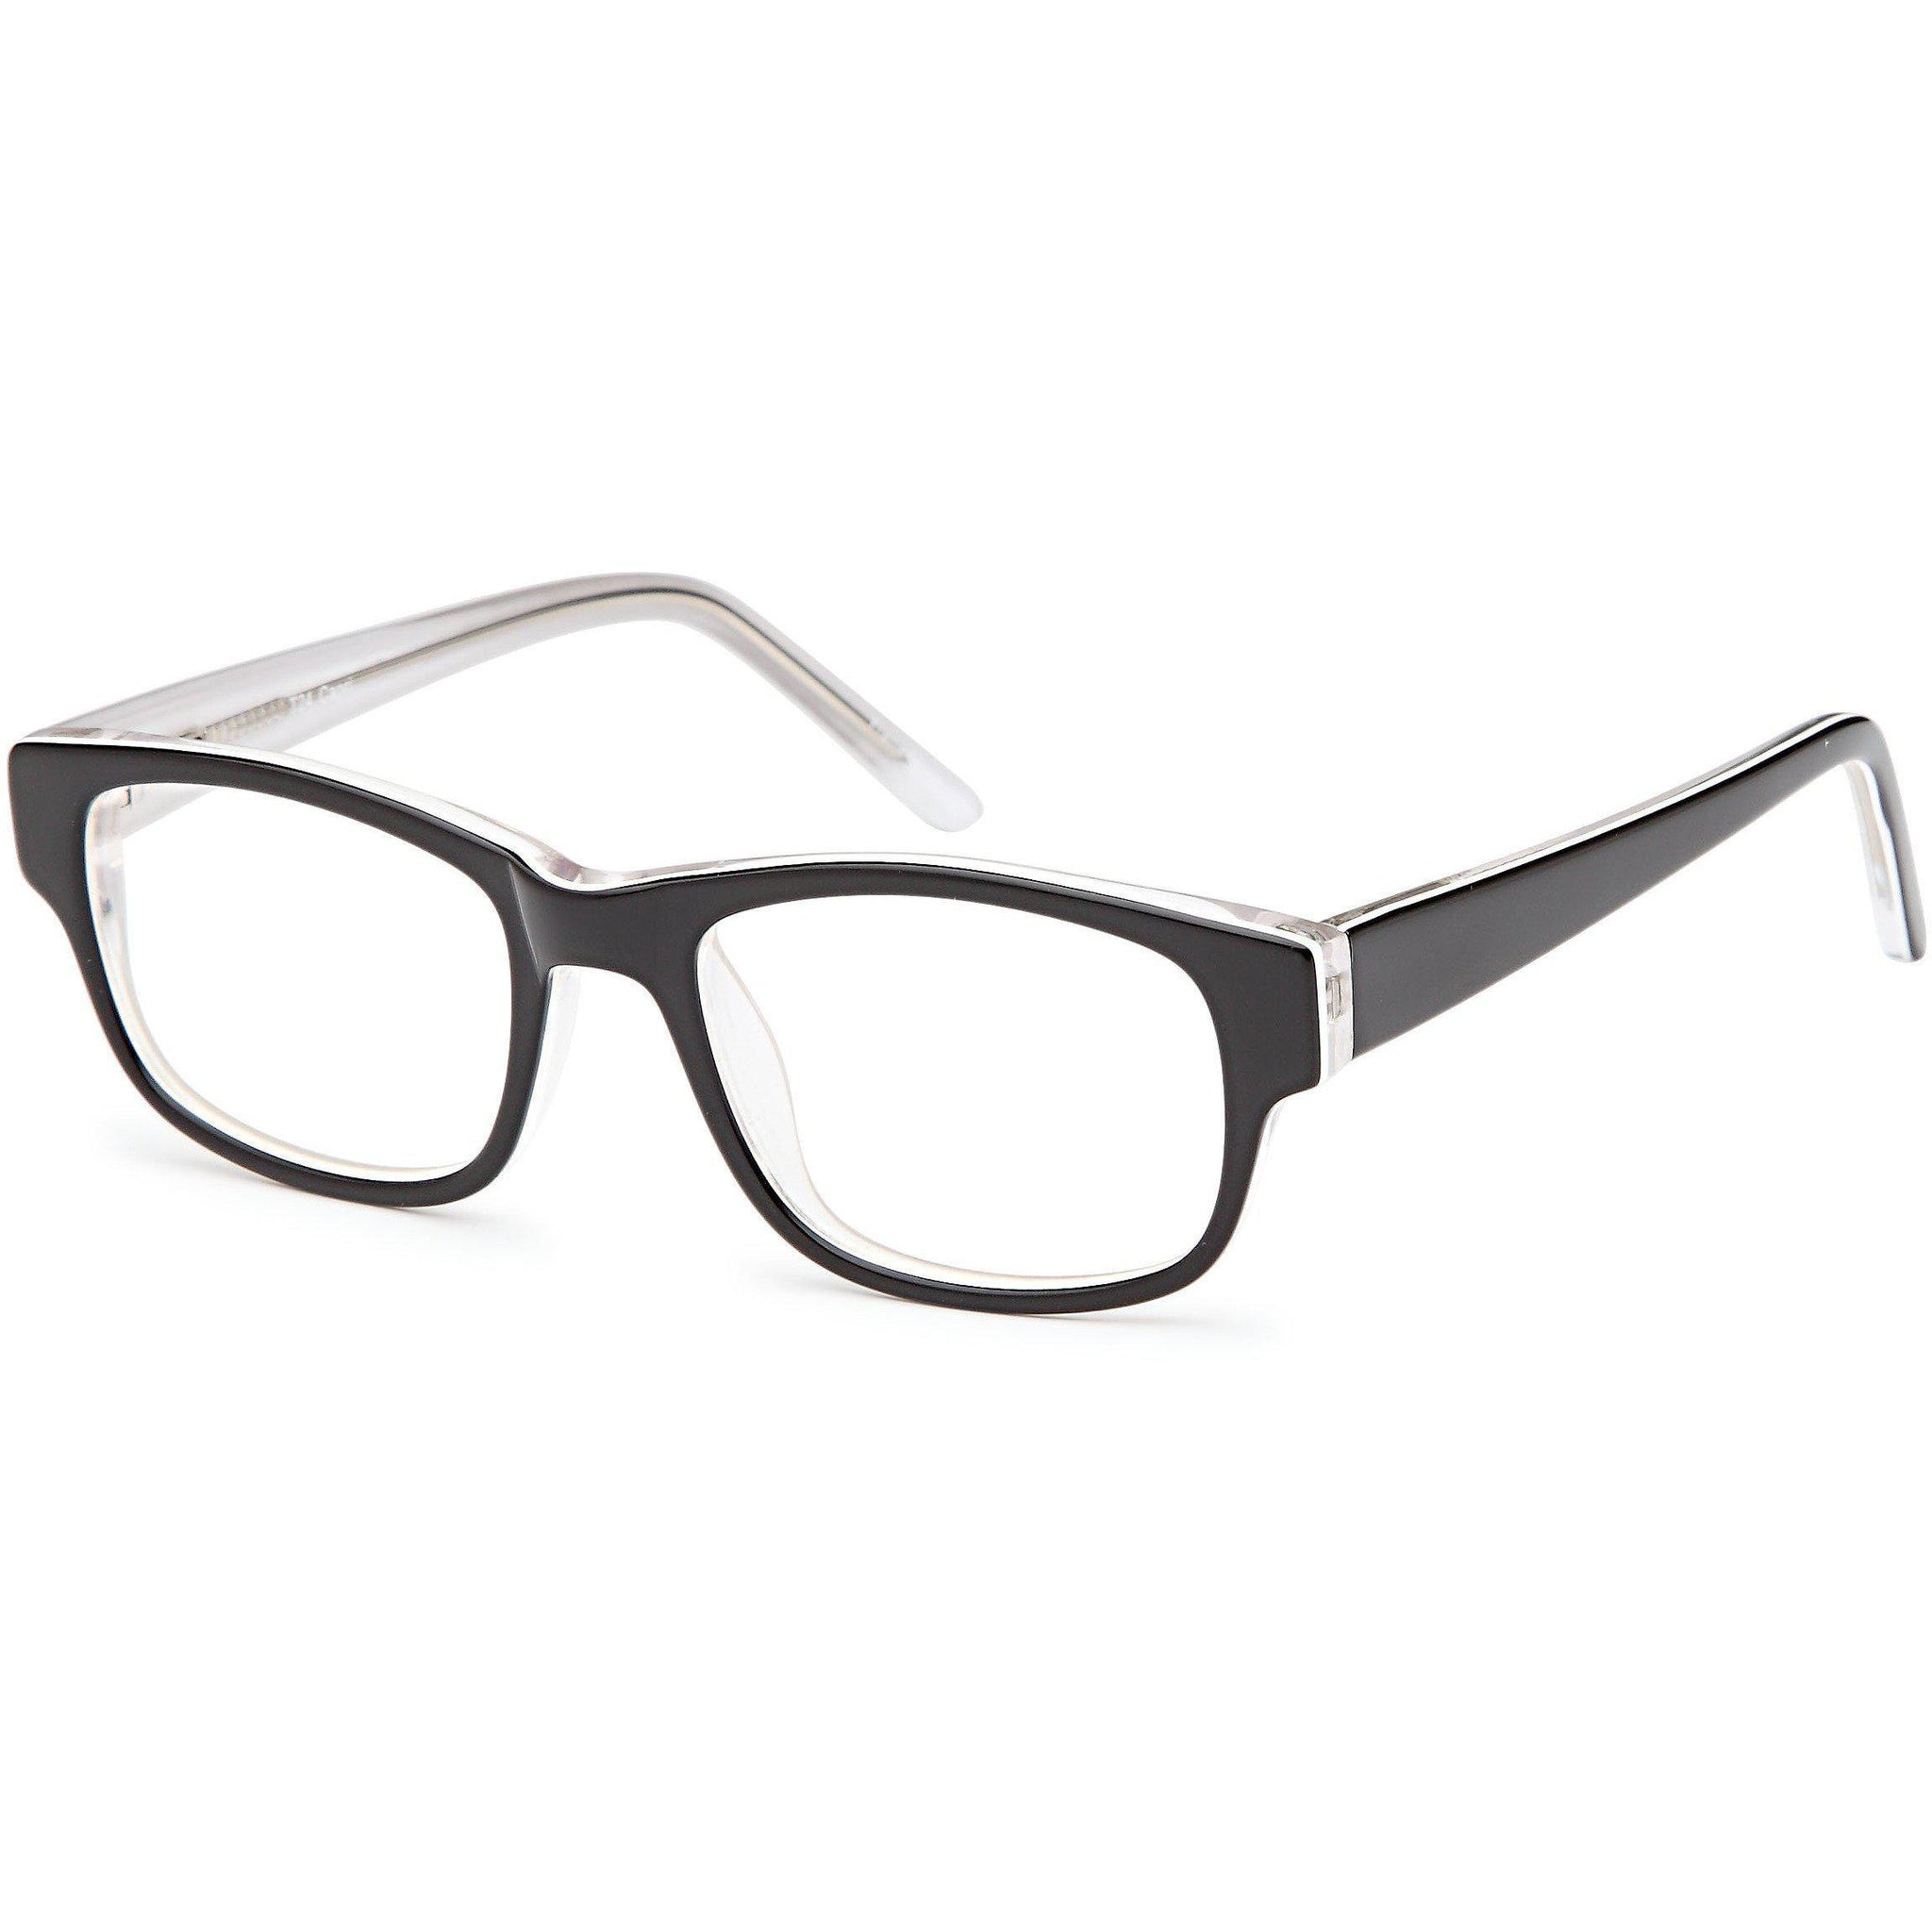 OnTrend Prescription Glasses T 24 Eyeglasses Frames